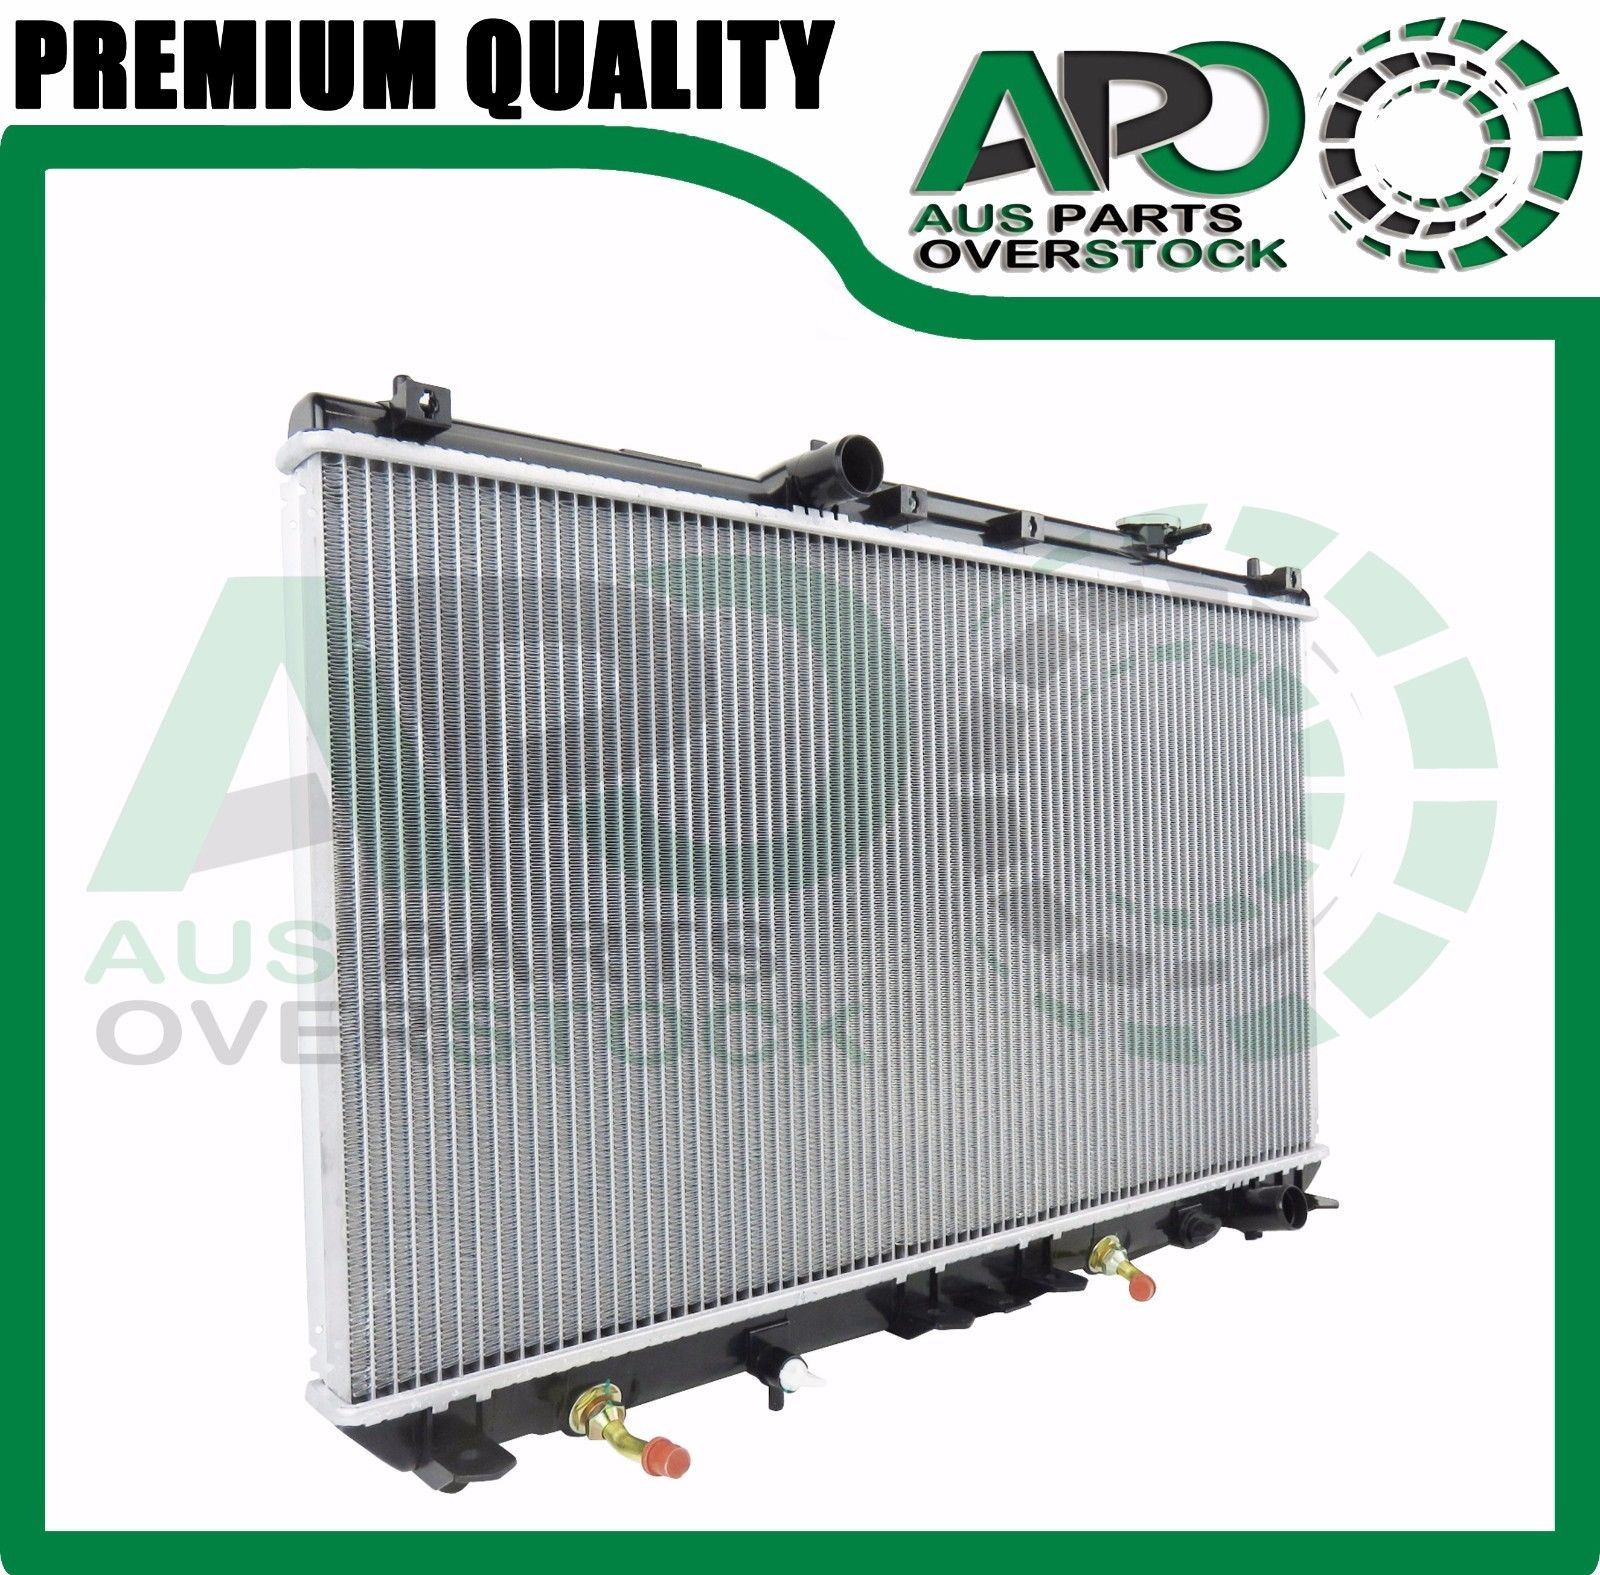 Premium Quality Radiator For Toyota Camry Sxv20r 2 2l 4cyl